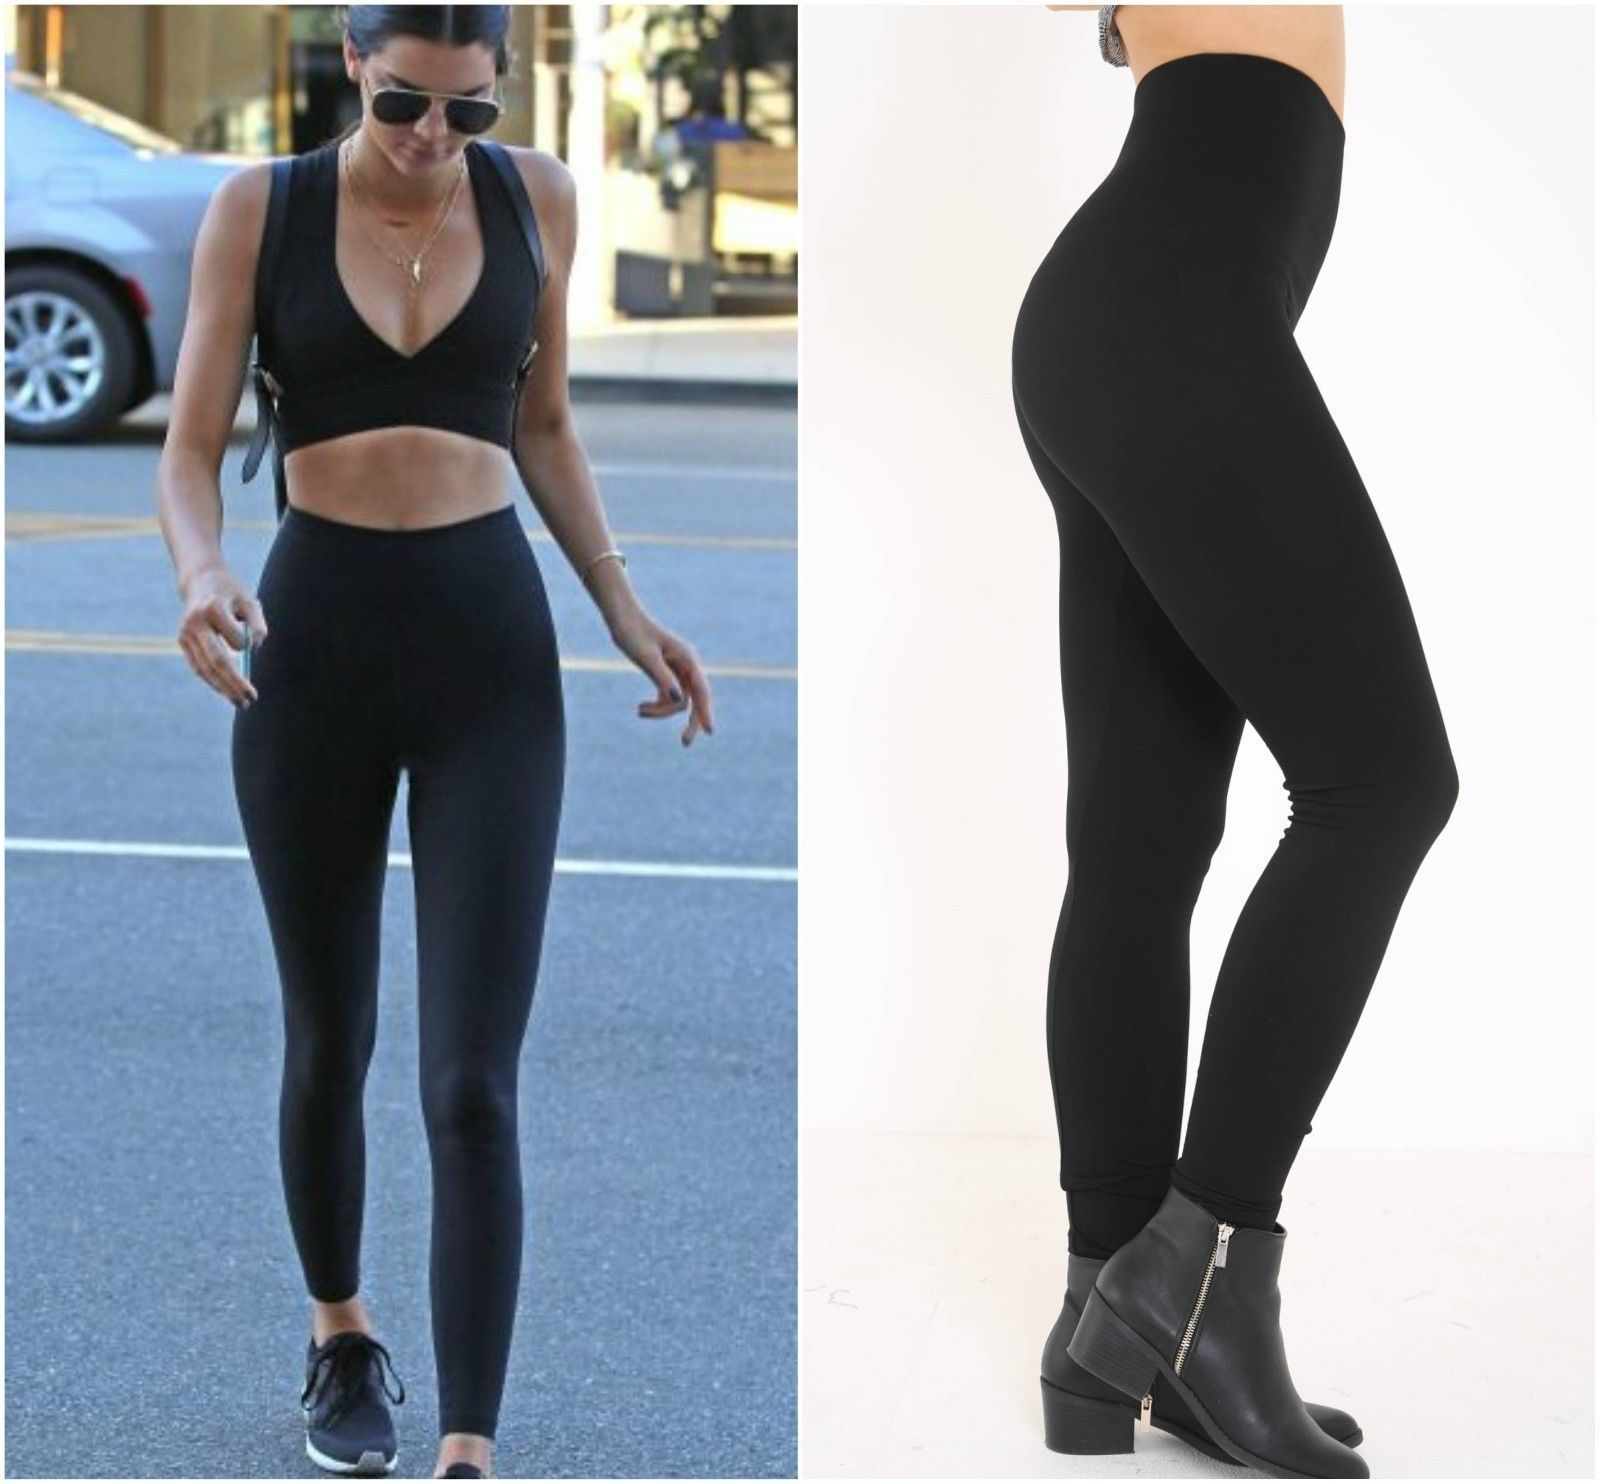 Control Slimming Shapewear Leggings Seamless High Waisted Tummy Support